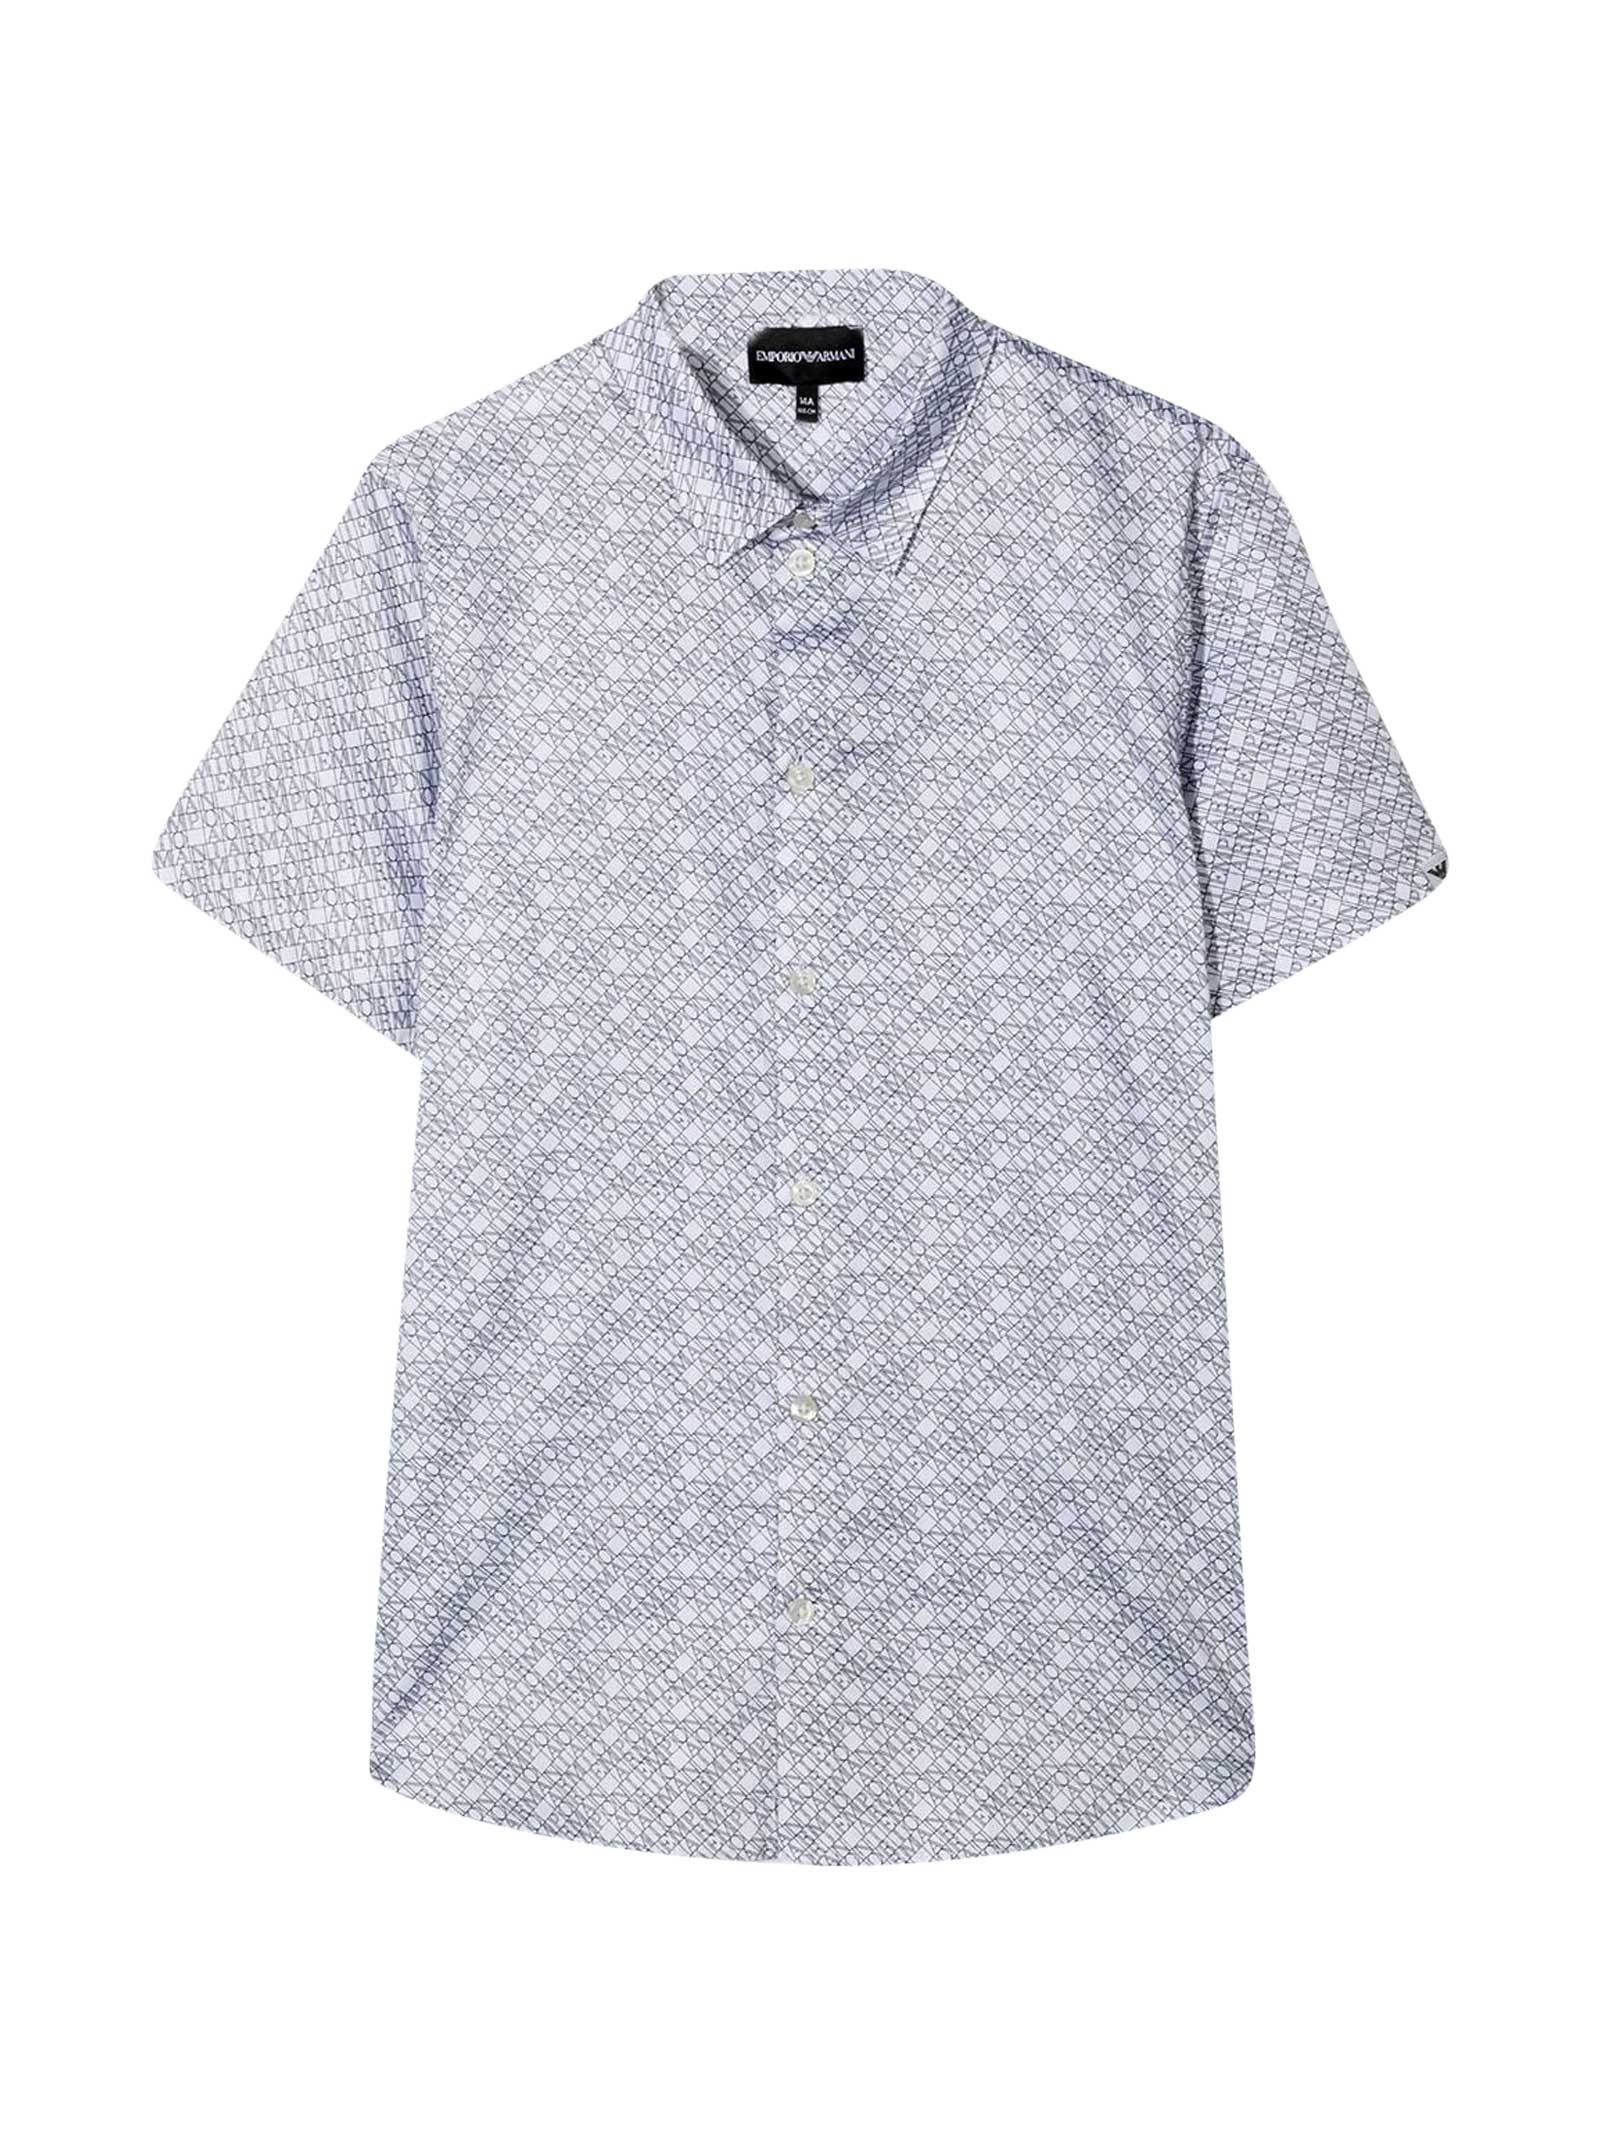 Emporio Armani Shirt With Press